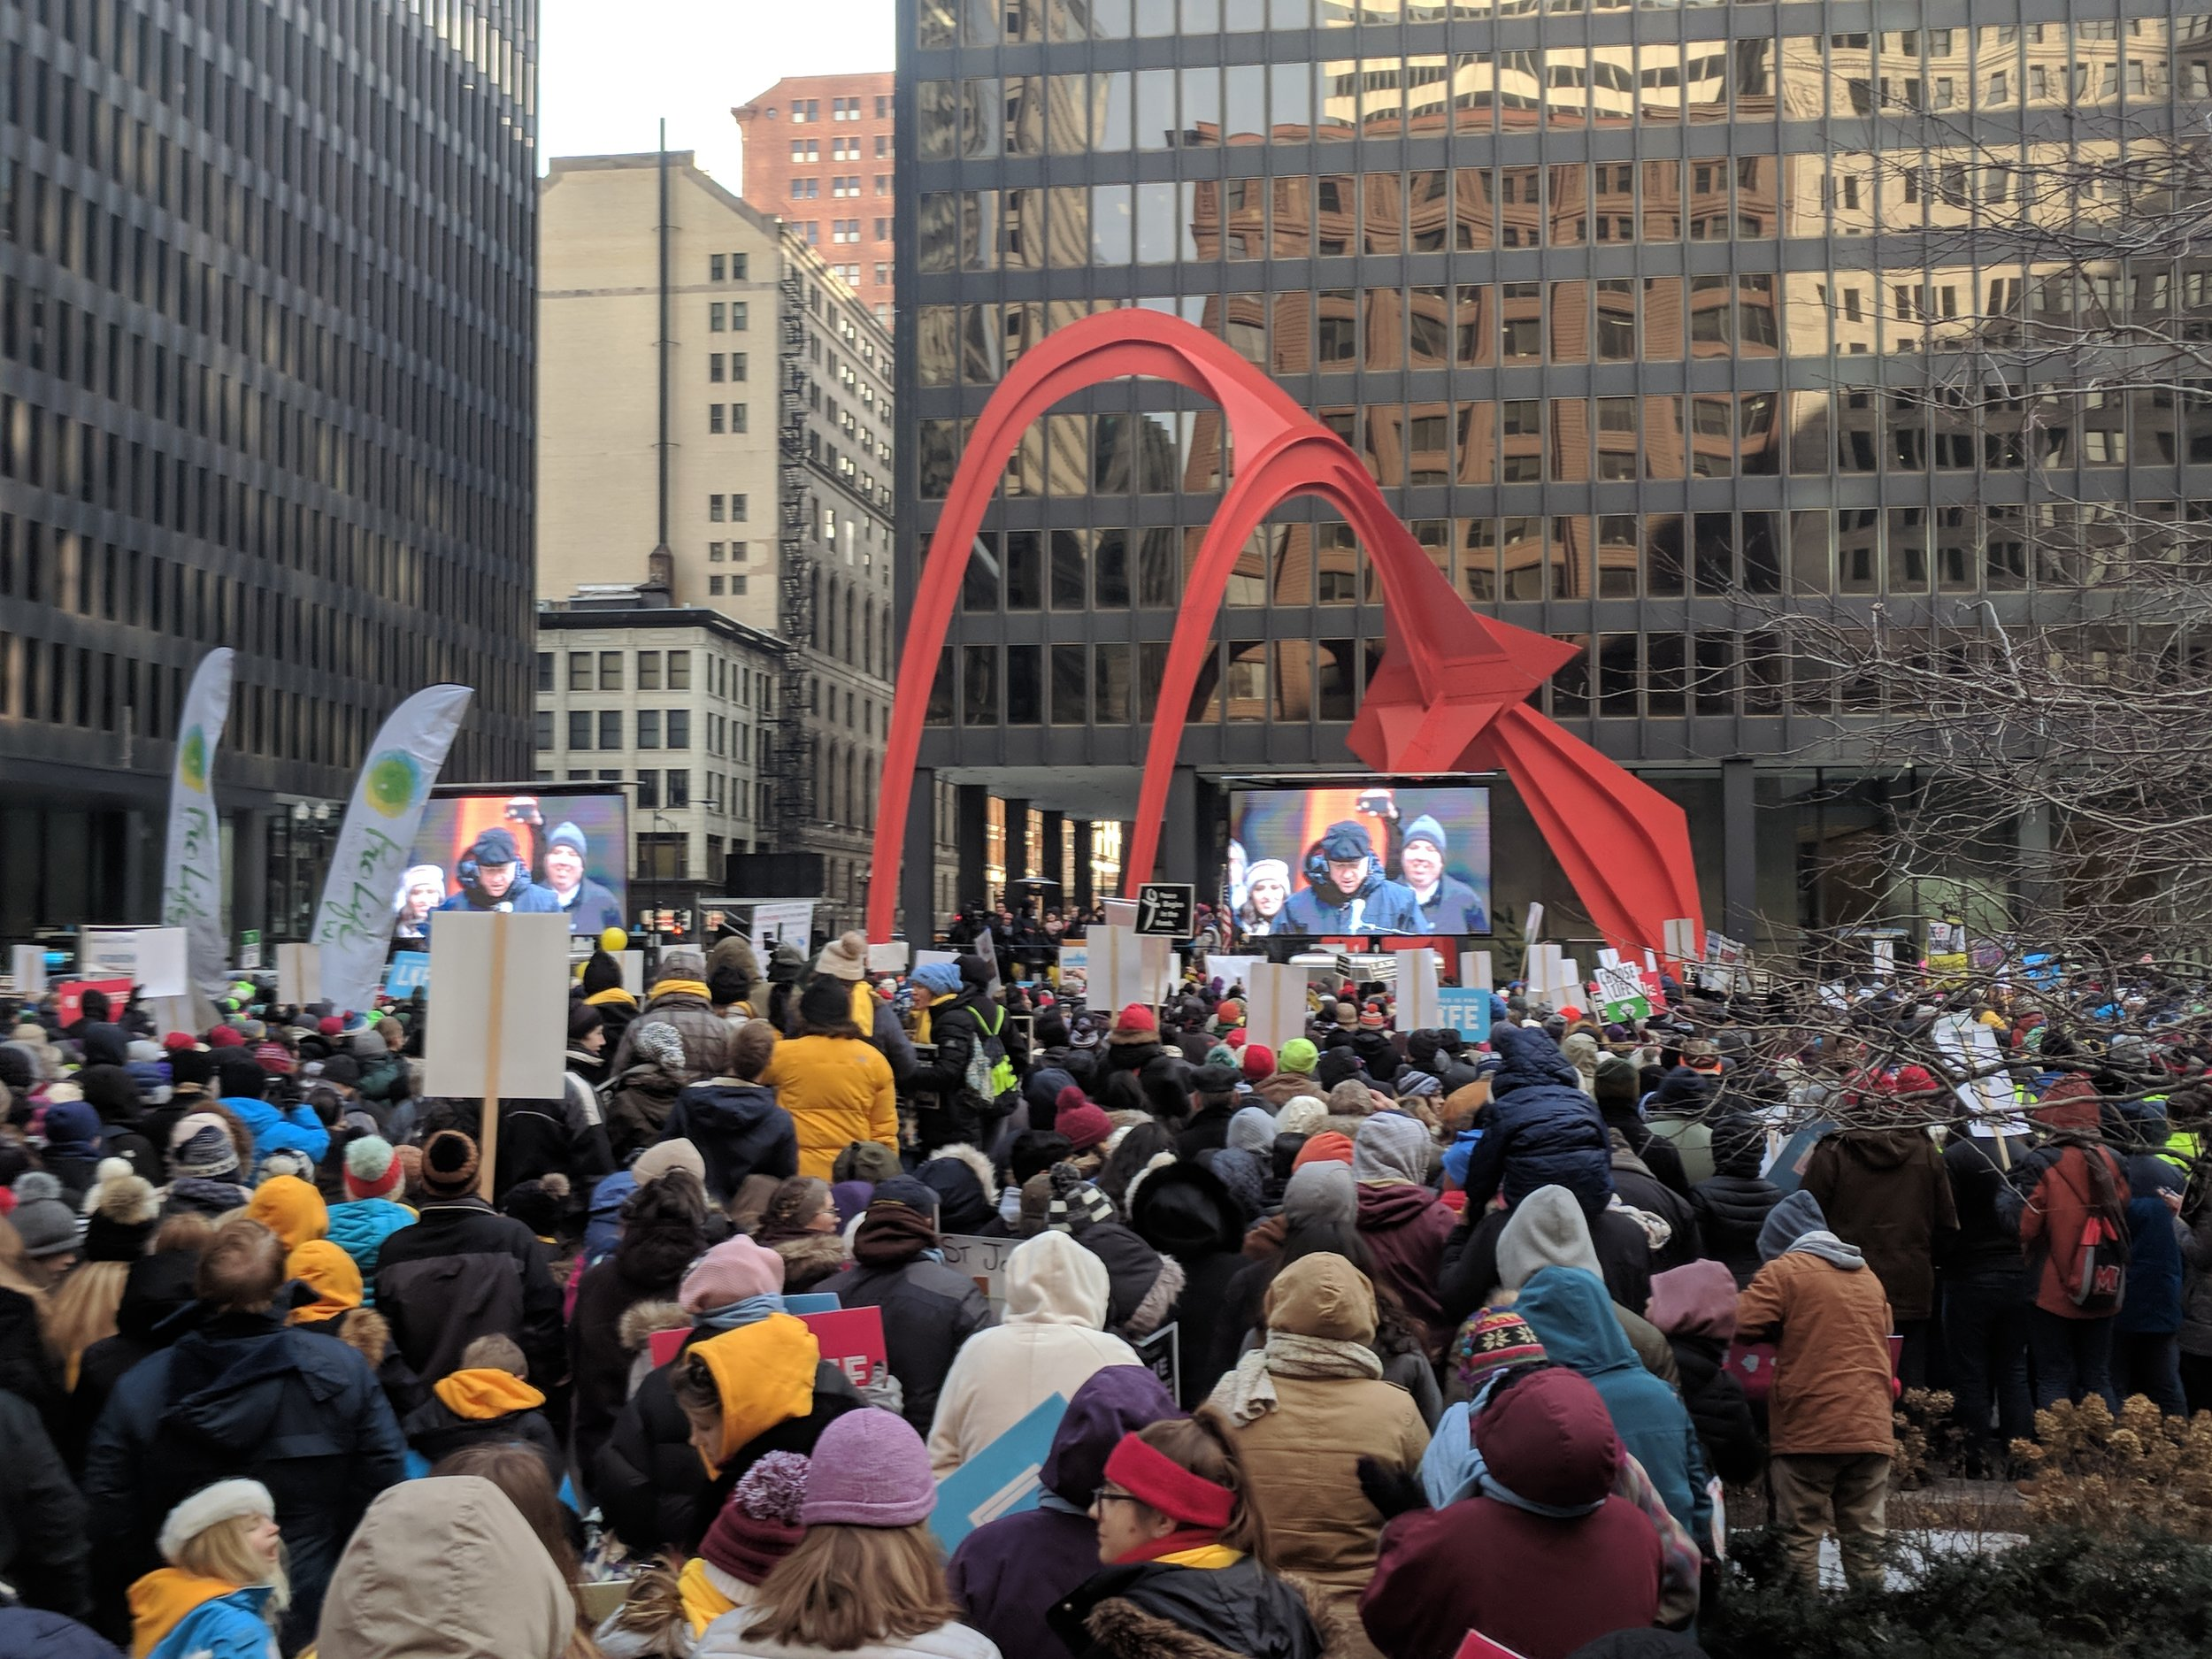 Pictured: Cardinal Blase Cupich from the Archdiocese of Chicago speaks to the crowd at Federal Plaza in downtown Chicago.